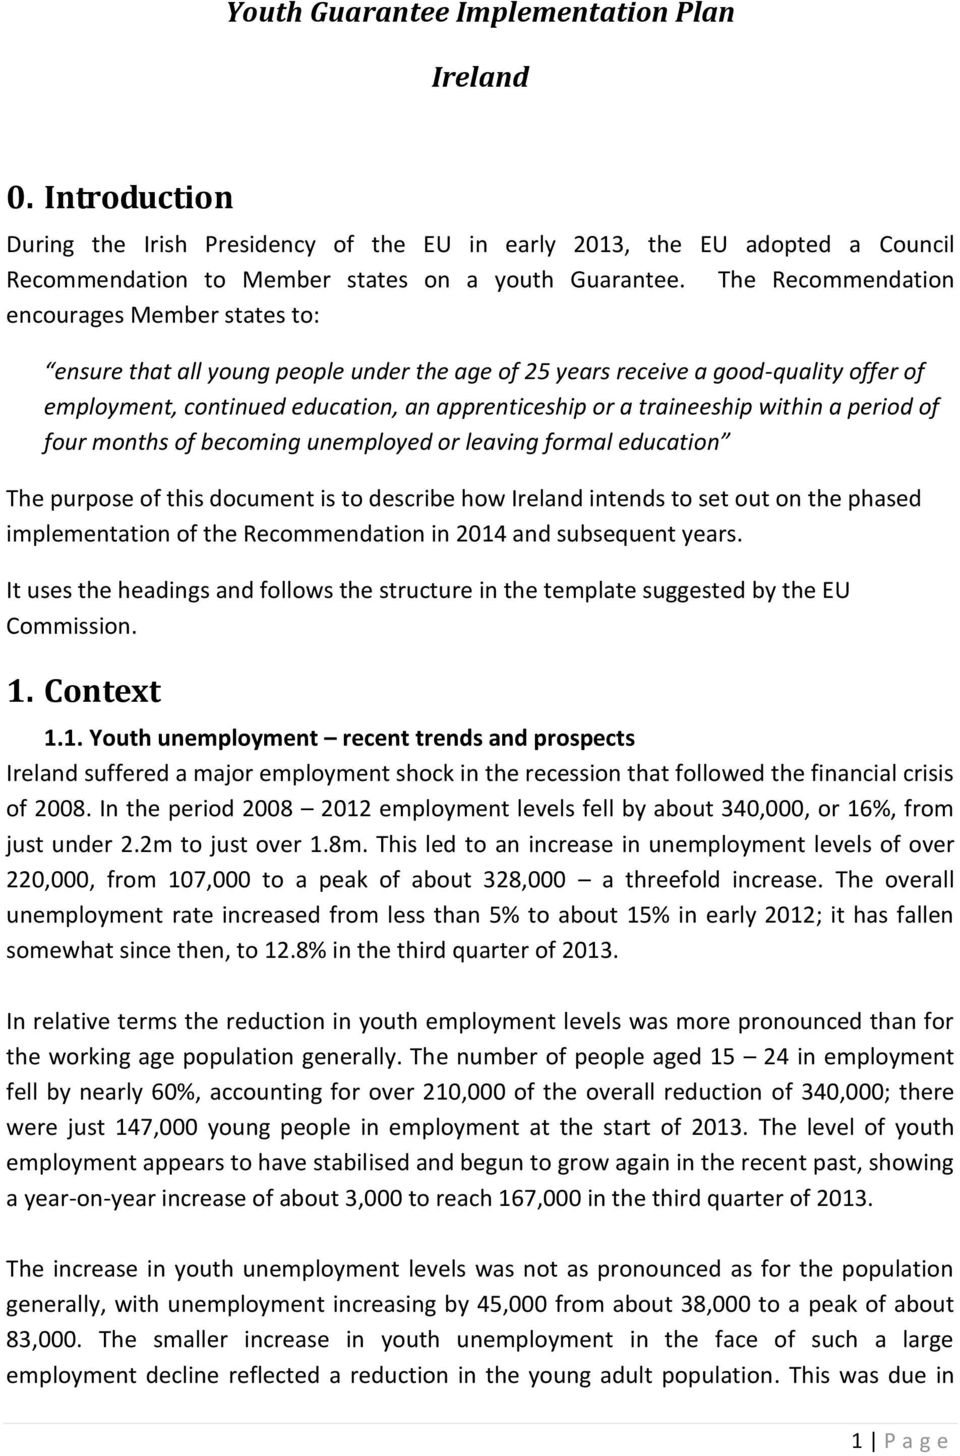 traineeship within a period of four months of becoming unemployed or leaving formal education The purpose of this document is to describe how Ireland intends to set out on the phased implementation